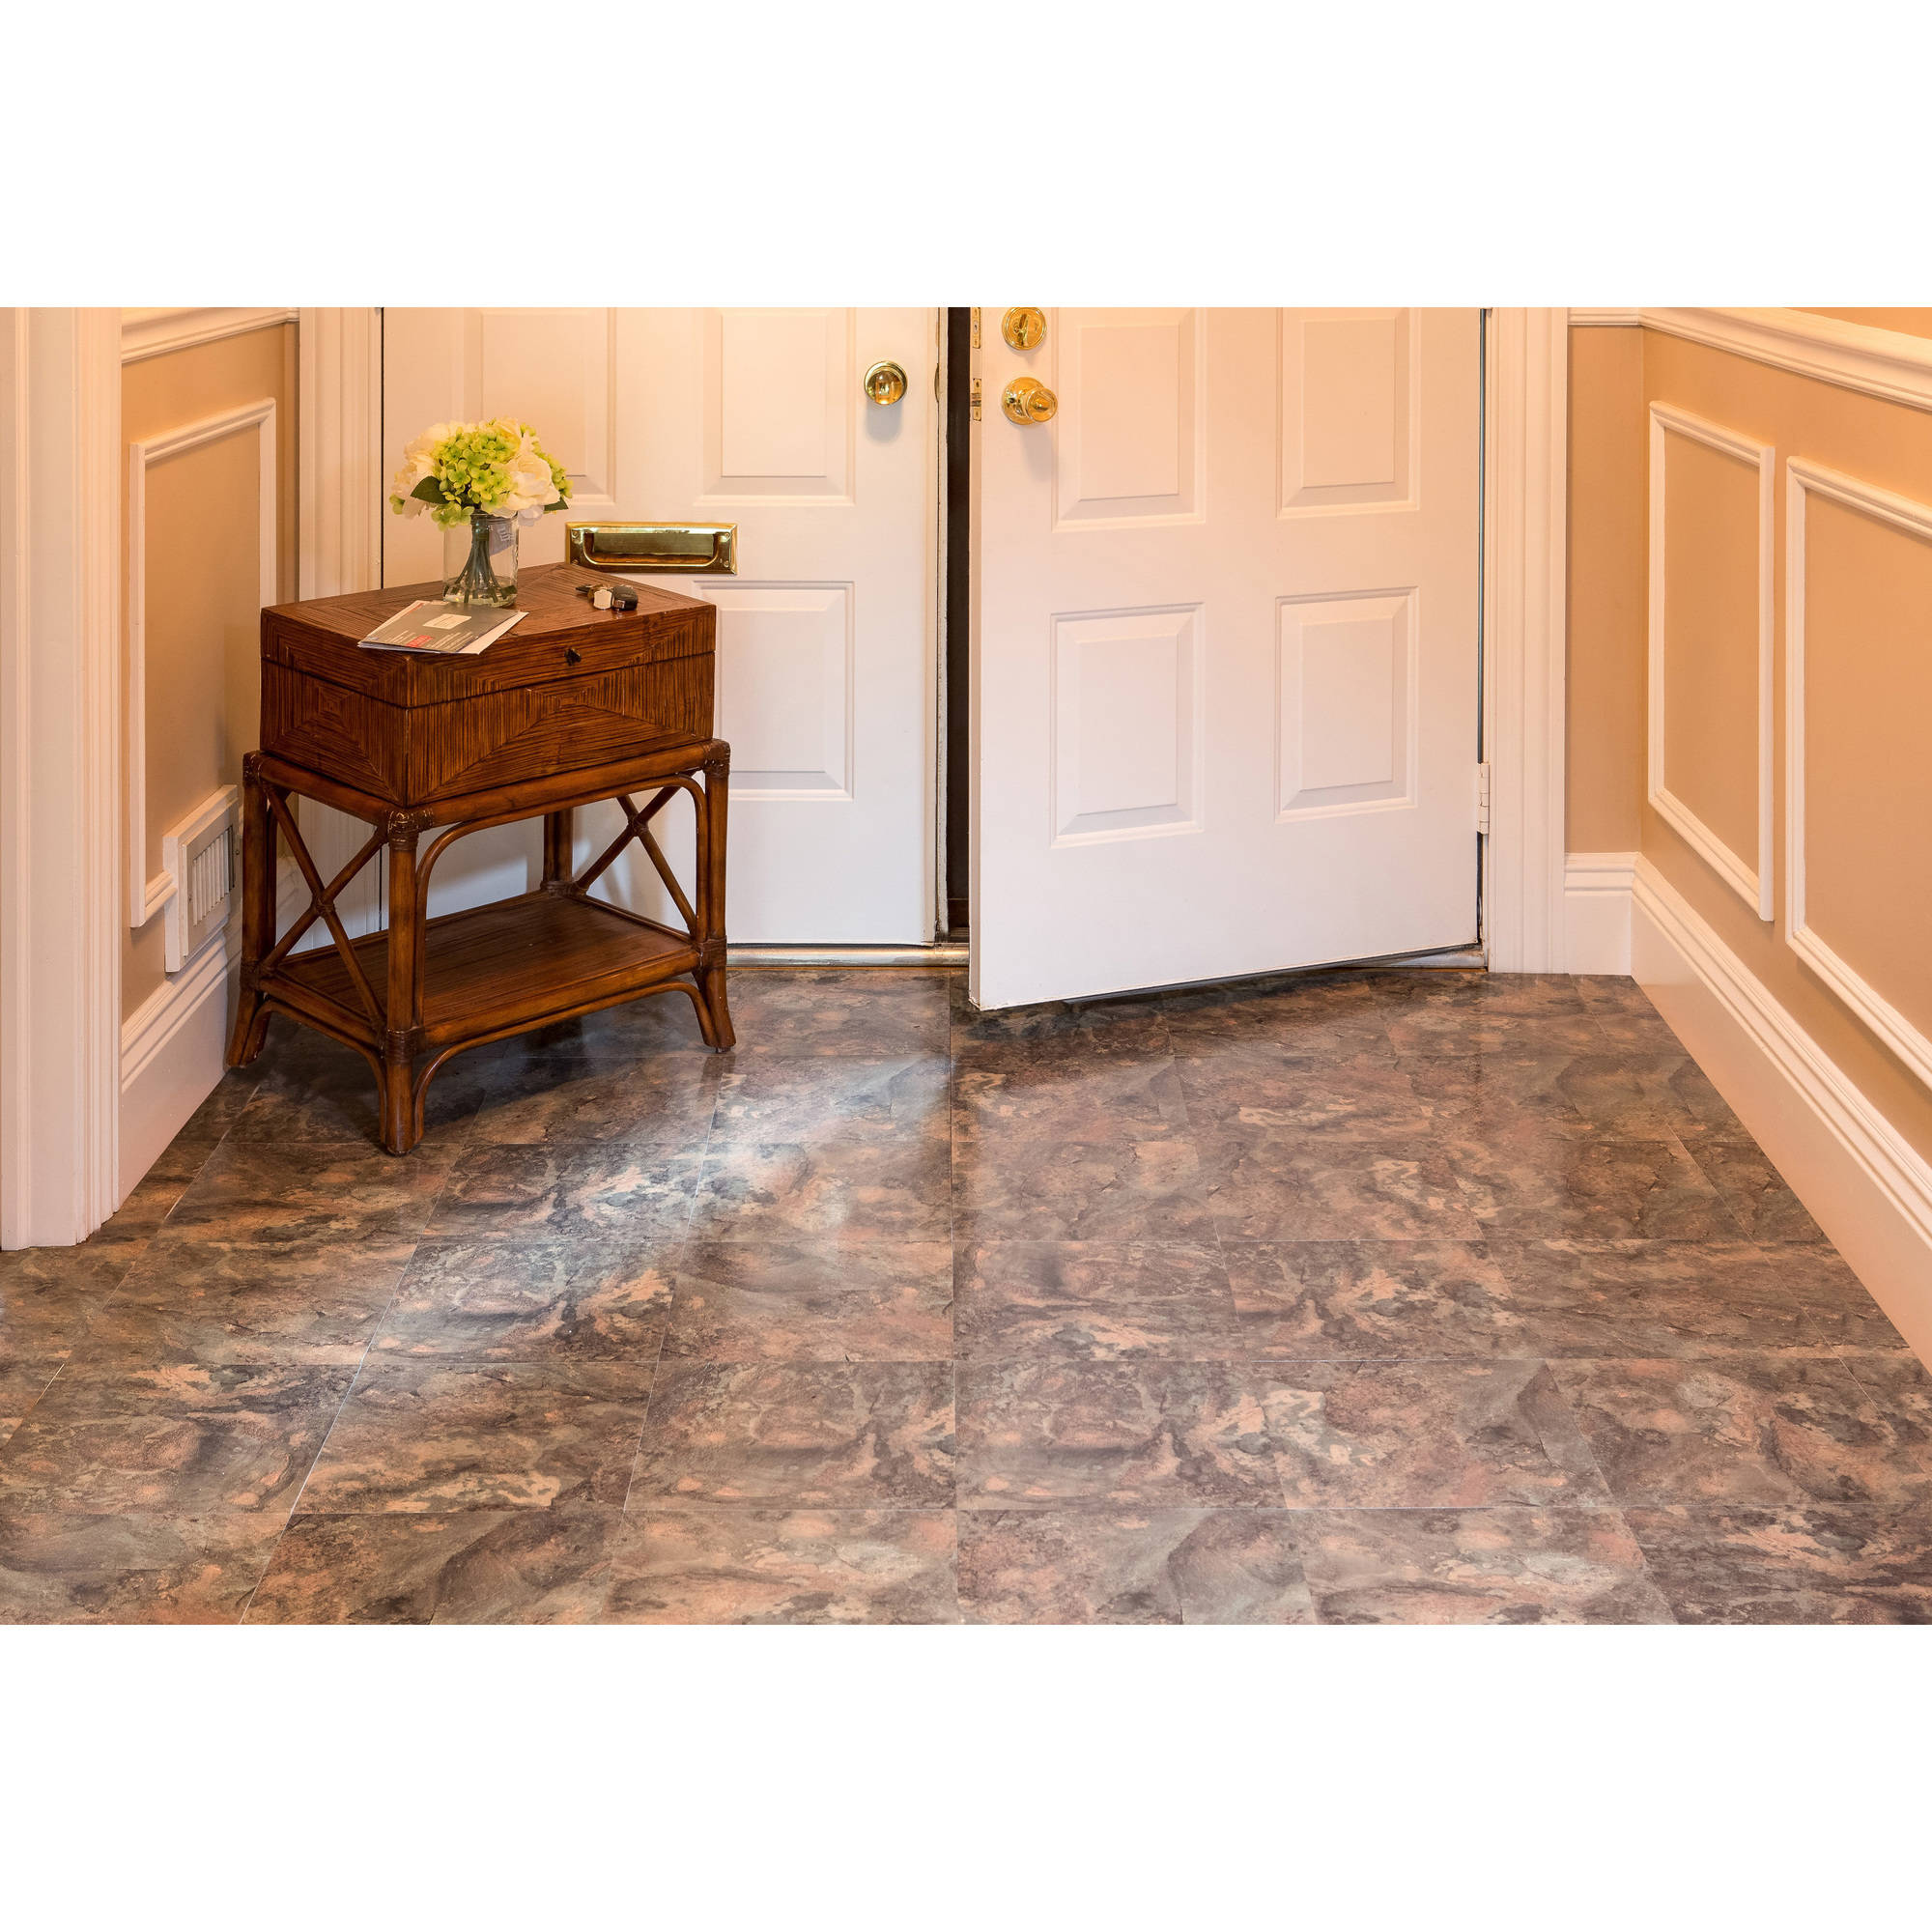 Nexus granite 12x12 self adhesive vinyl floor tile 20 tiles20 nexus granite 12x12 self adhesive vinyl floor tile 20 tiles20 sqft walmart dailygadgetfo Gallery